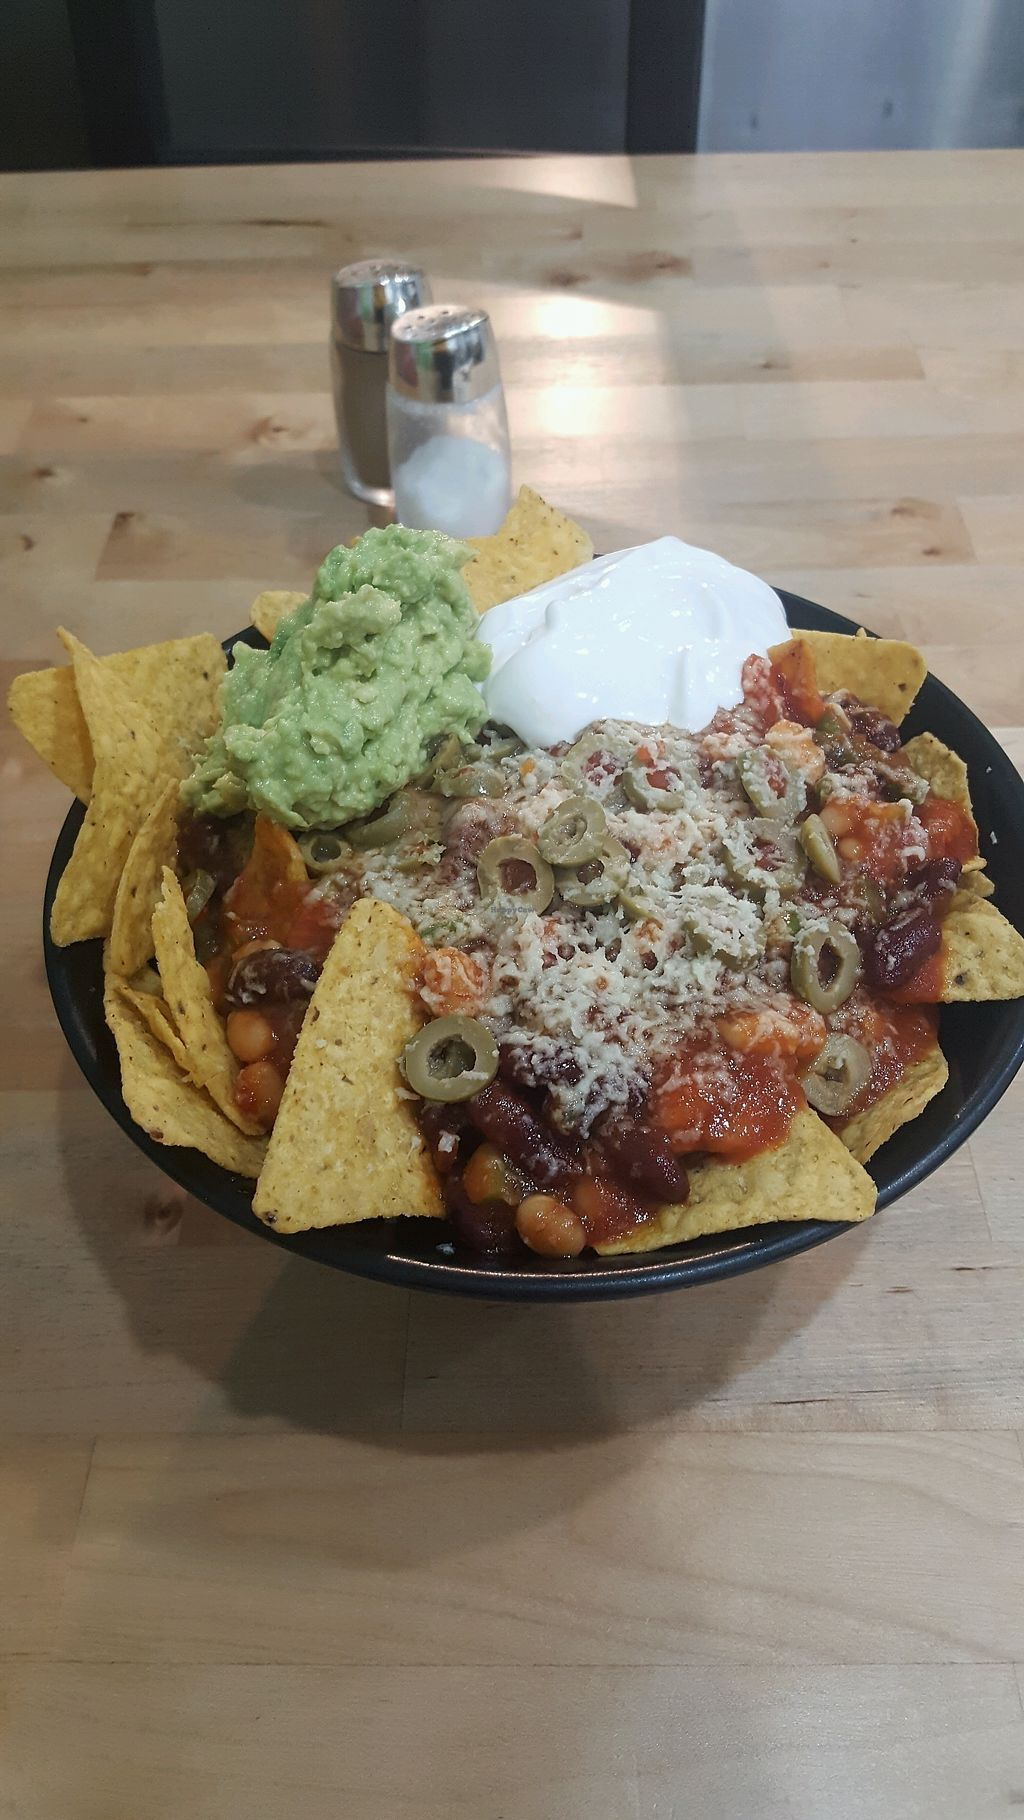 """Photo of Hari's Vegetarian  by <a href=""""/members/profile/MaryKelly"""">MaryKelly</a> <br/>vegan nachos ? <br/> January 16, 2018  - <a href='/contact/abuse/image/32555/347072'>Report</a>"""